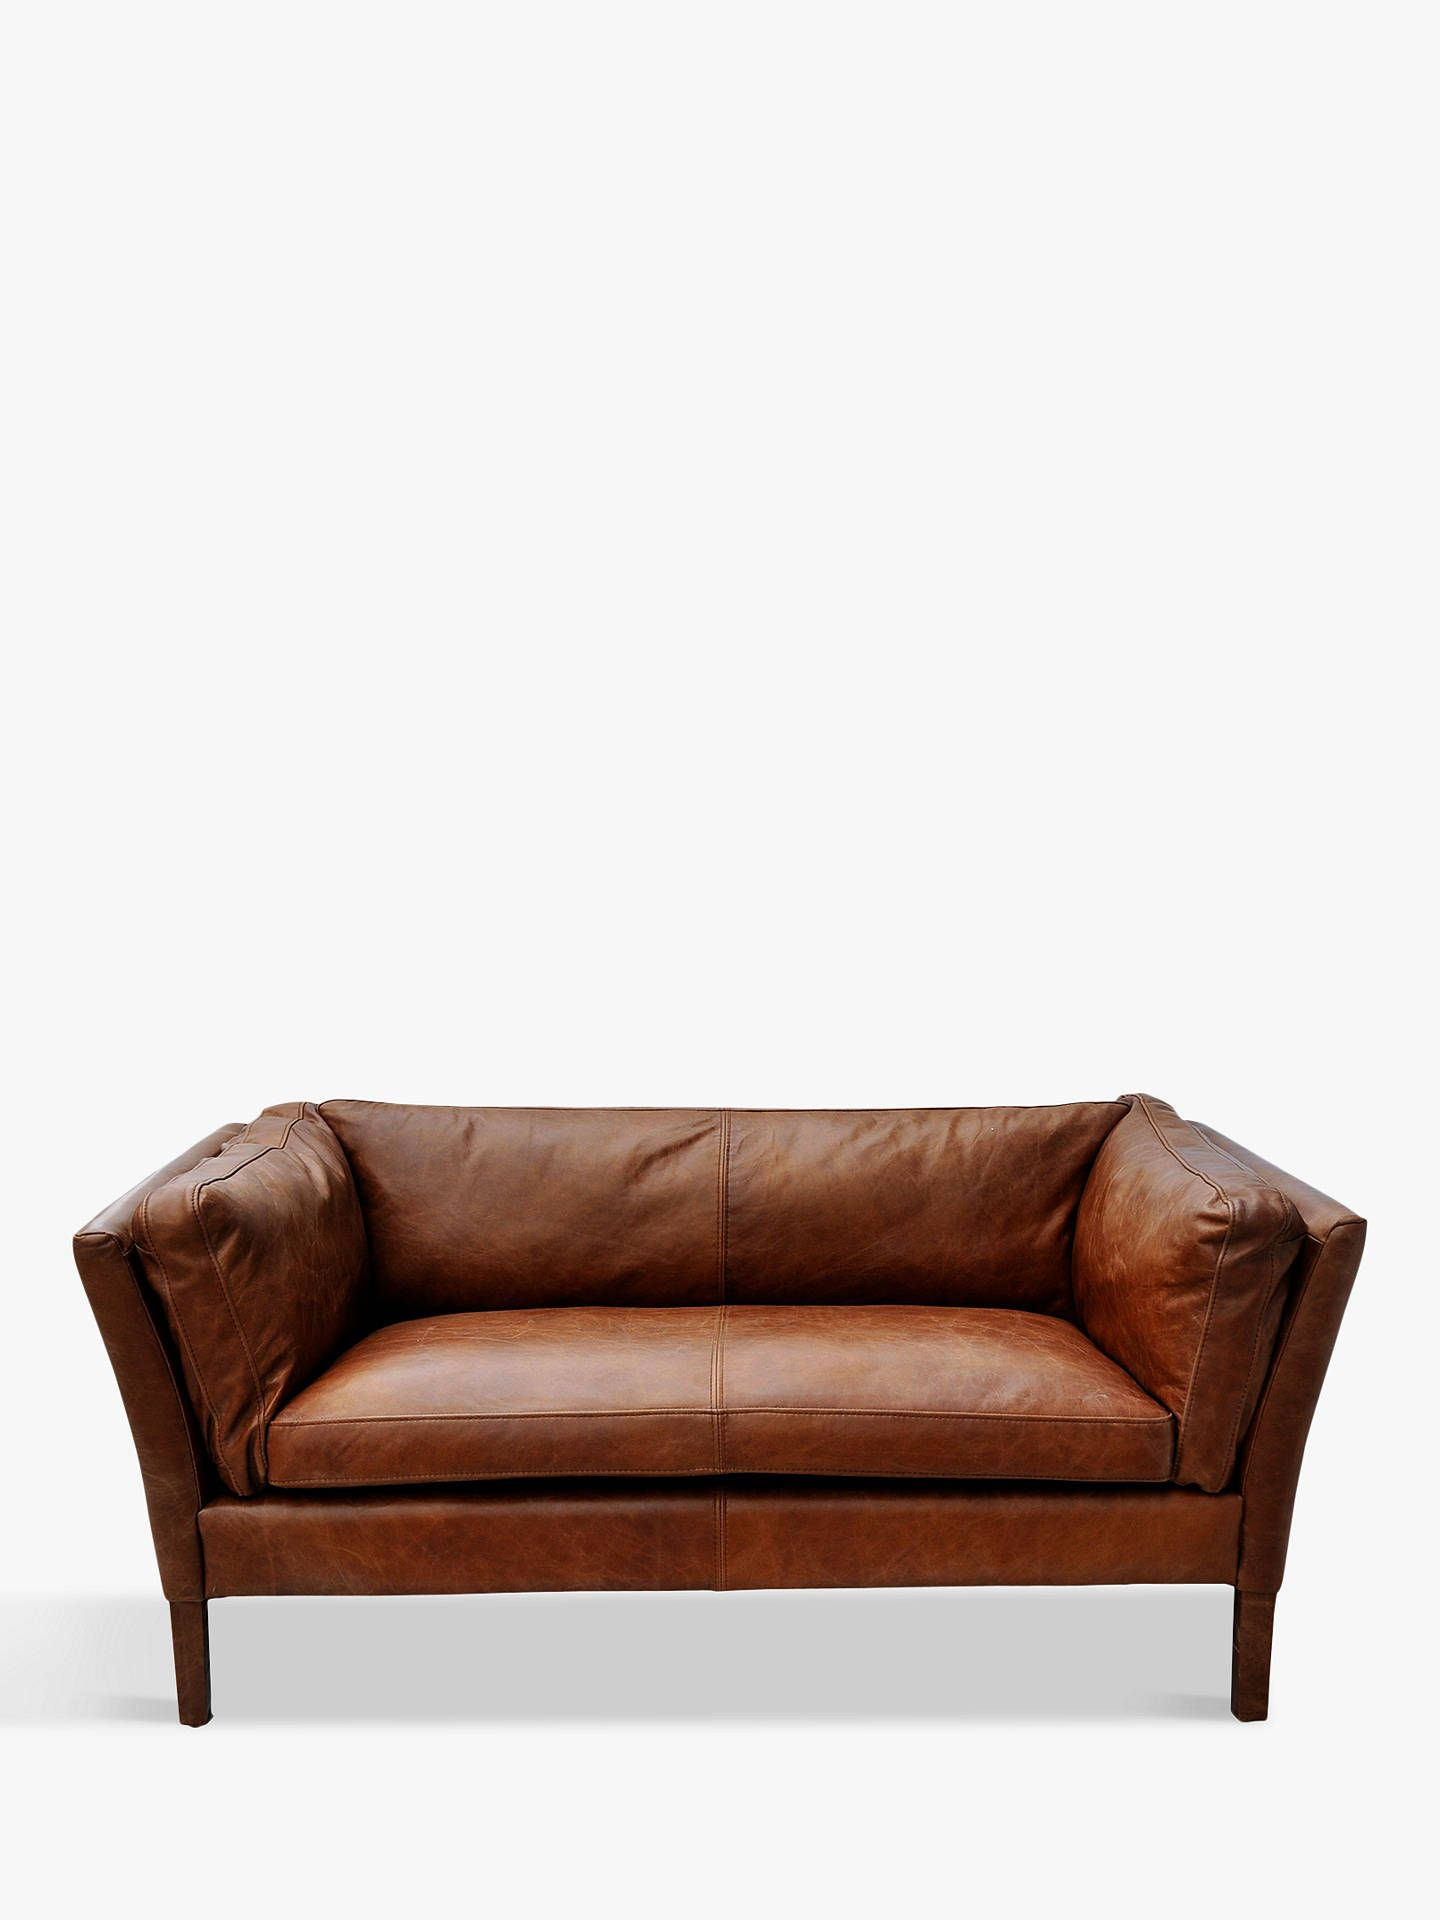 Halo Groucho Small 2 Seater Leather Sofa Antique Whisky In 2020 Leather Sofa Vintage Leather Sofa Brown Leather Sofa